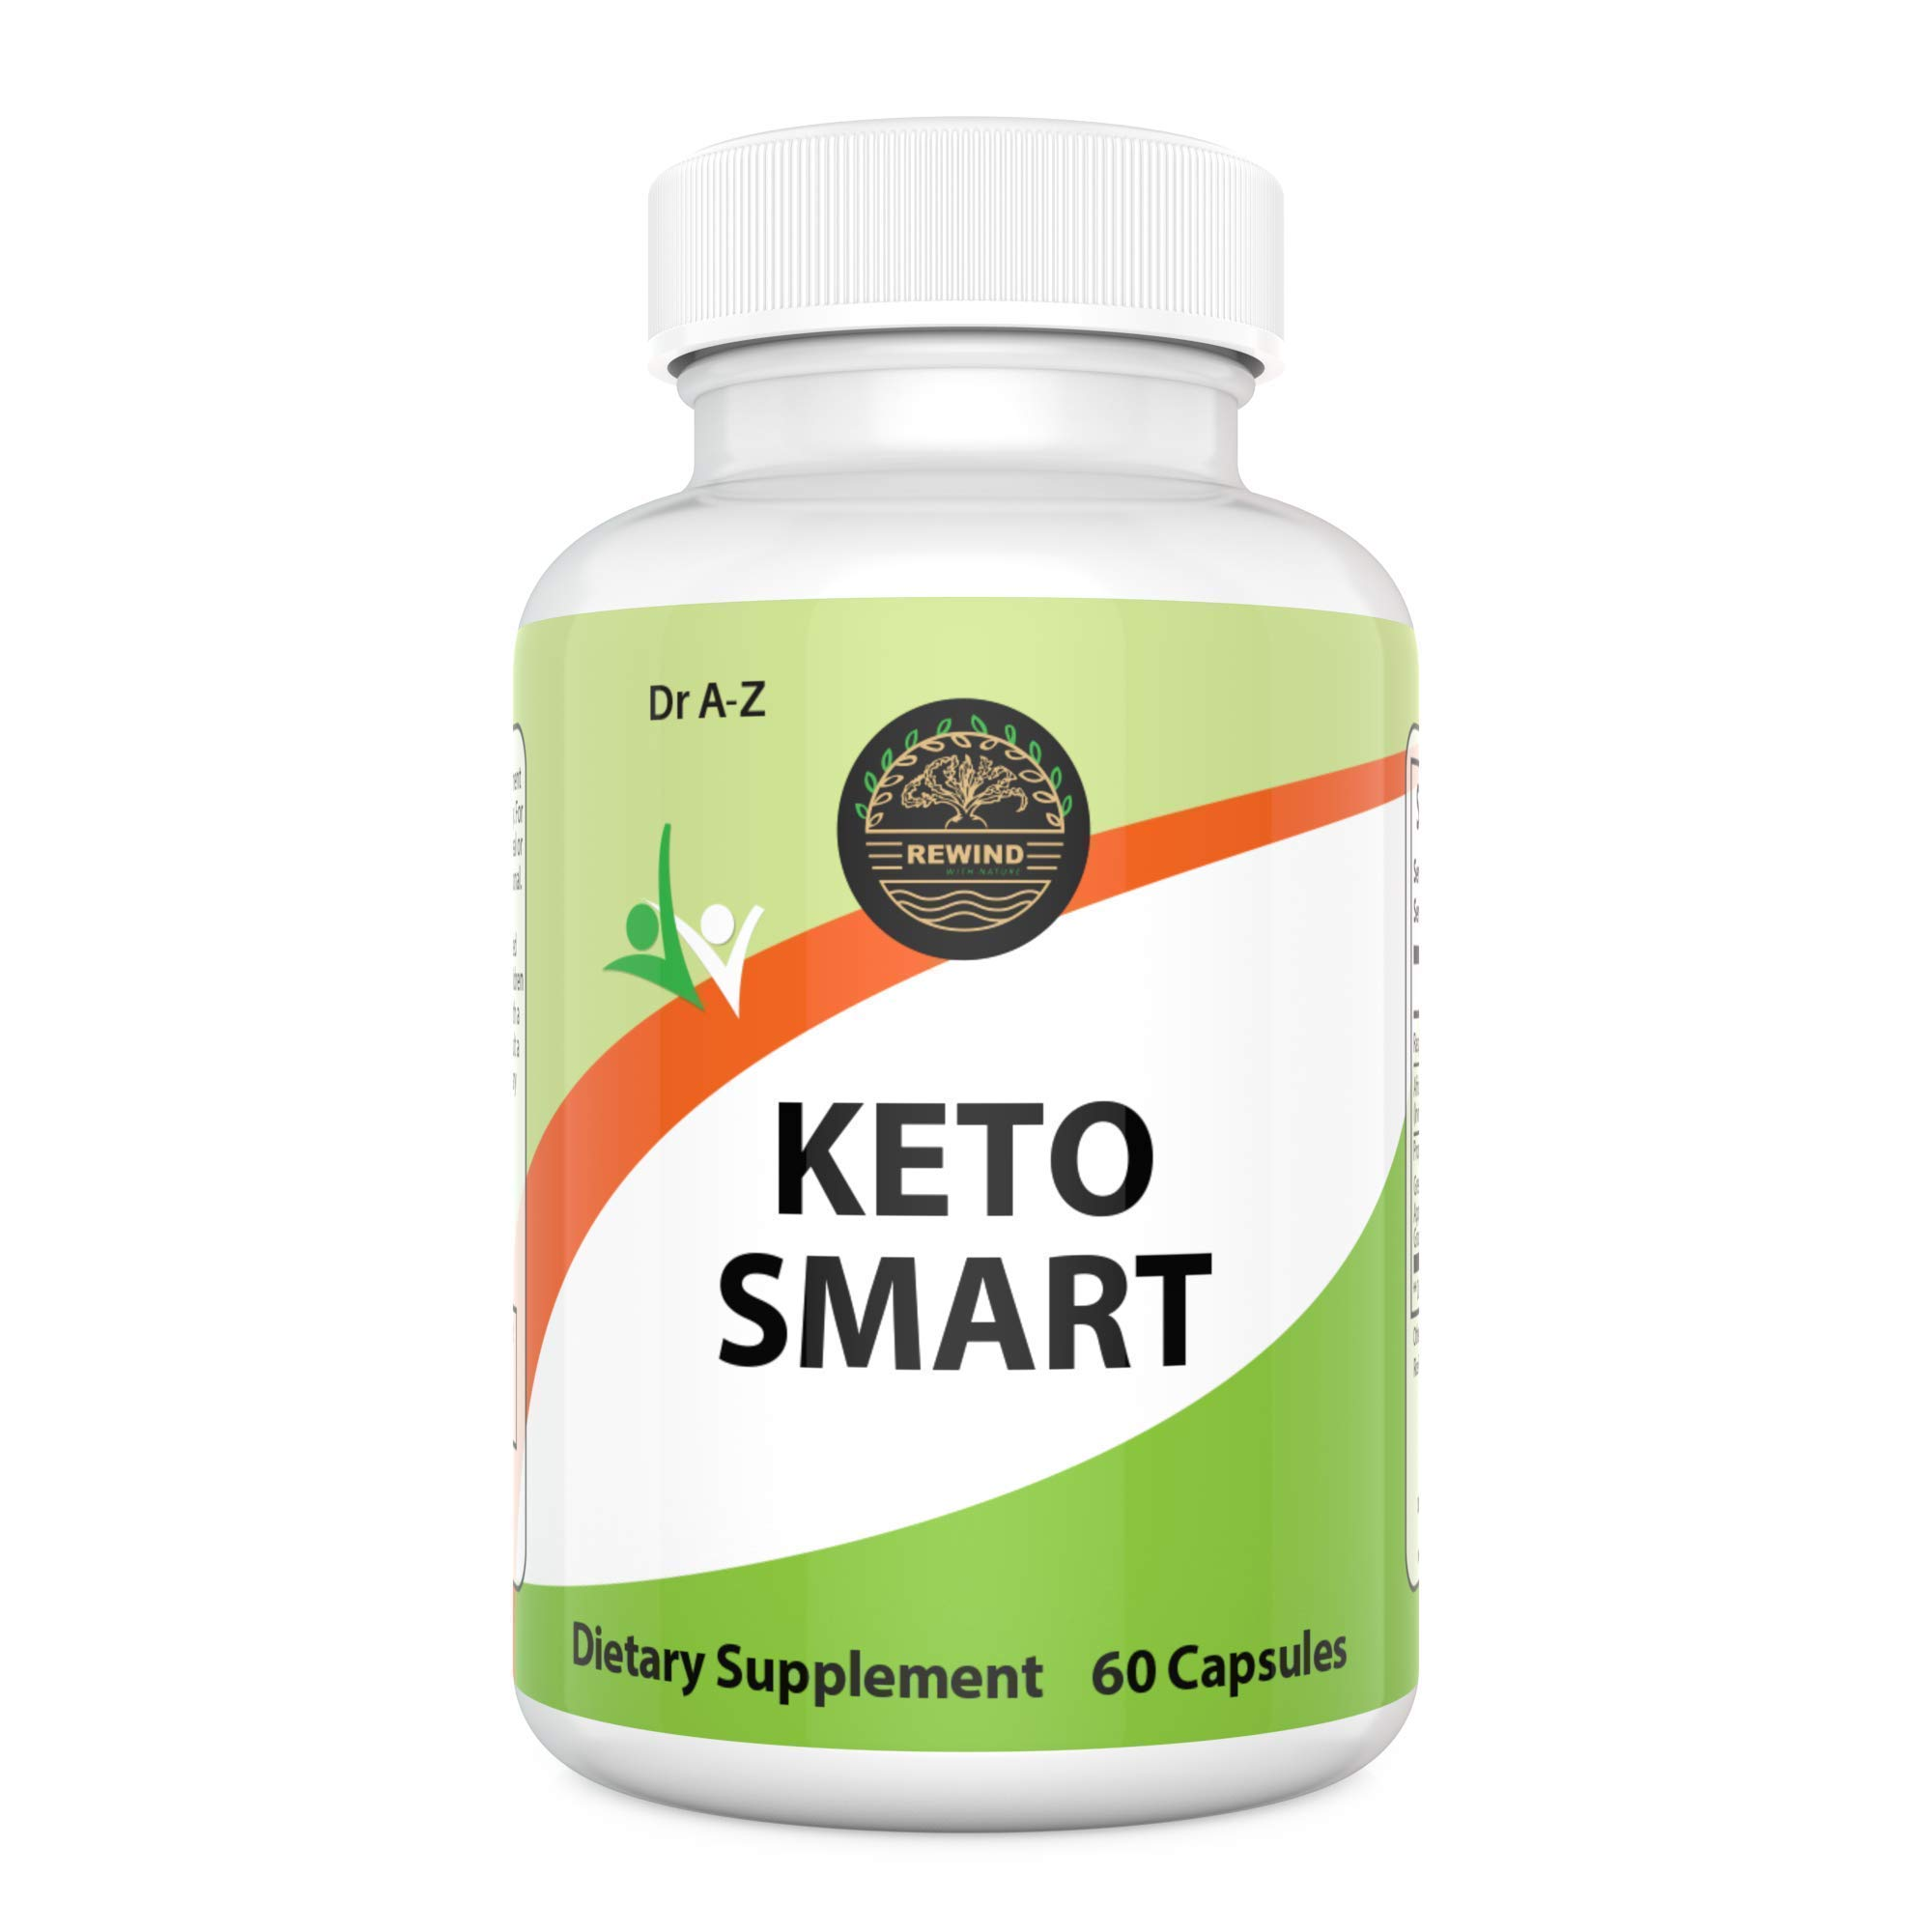 Keto Smart Supplement Slimfast Diet Weight Loss Ultra Advanced Weight Loss Diet Pill Fat Burner Ketogenic Ketosis KetoBur Boost Energy 7 Keto Shark Tank Low Carbs Appetite Suppressant 30 Days Supply by Rewind With Nature